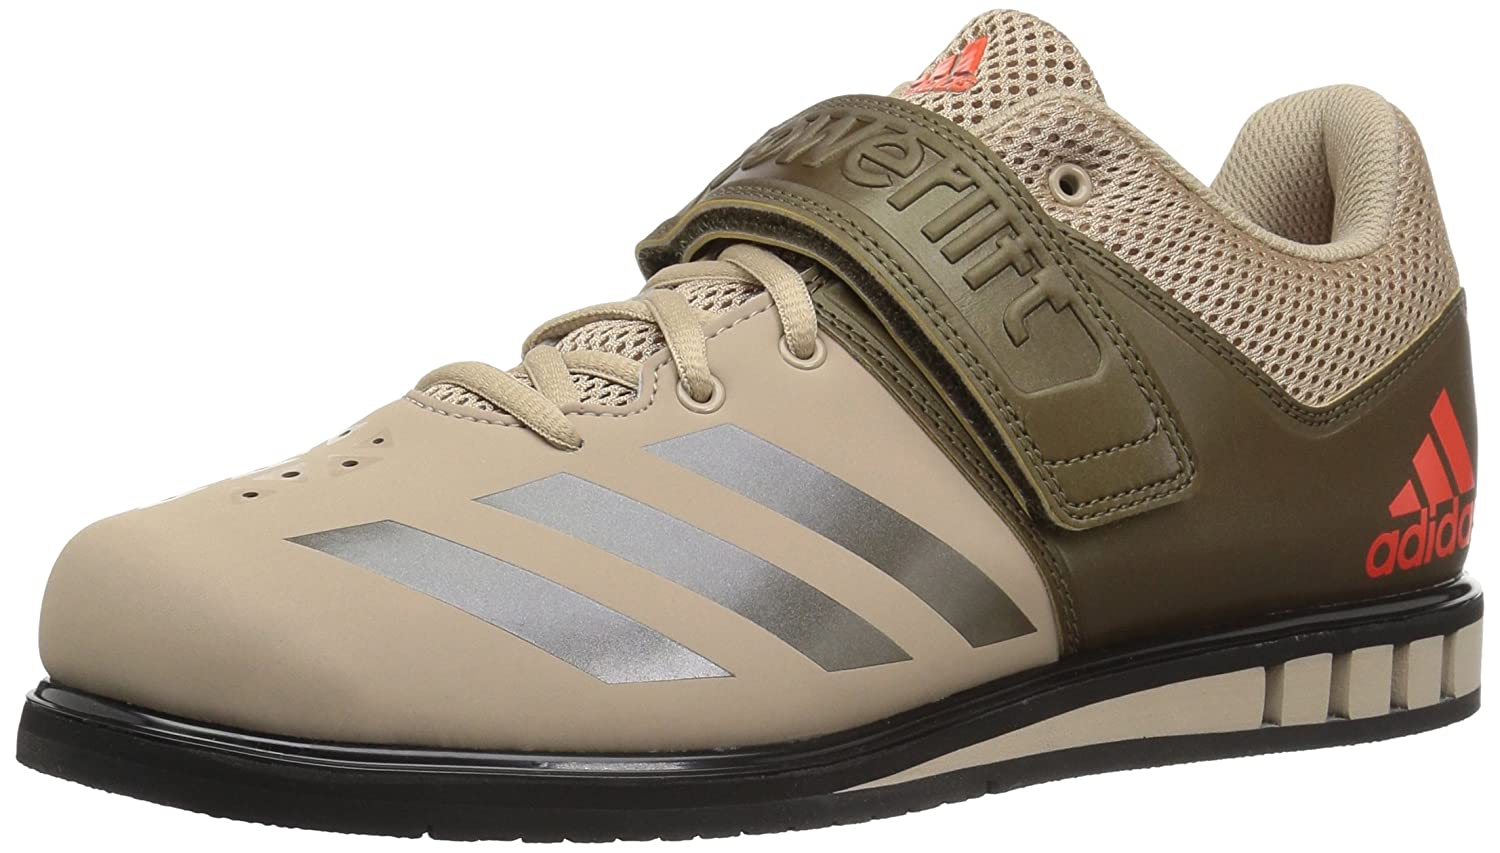 Tech Beige Trace Olive Black adidas Powerlift.3.1 shoes Men's Weightlifting